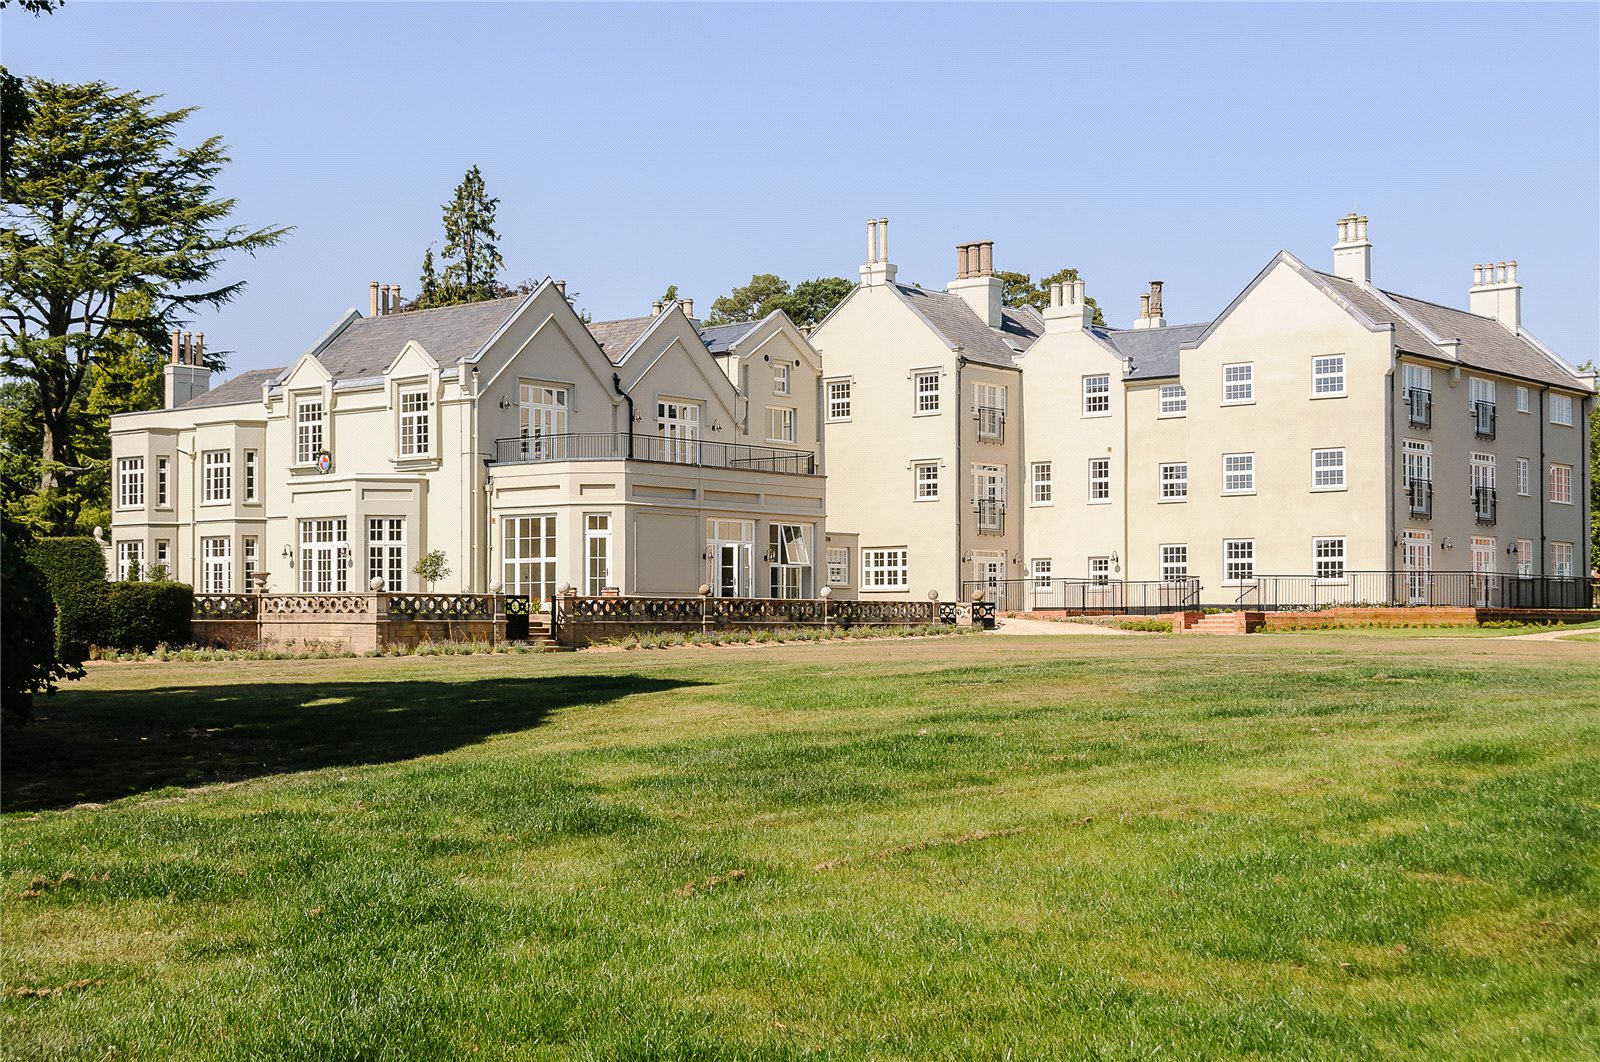 Apartments / Residences for Sale at Node Park, Codicote, Hitchin, Herts, SG4 Herts, England